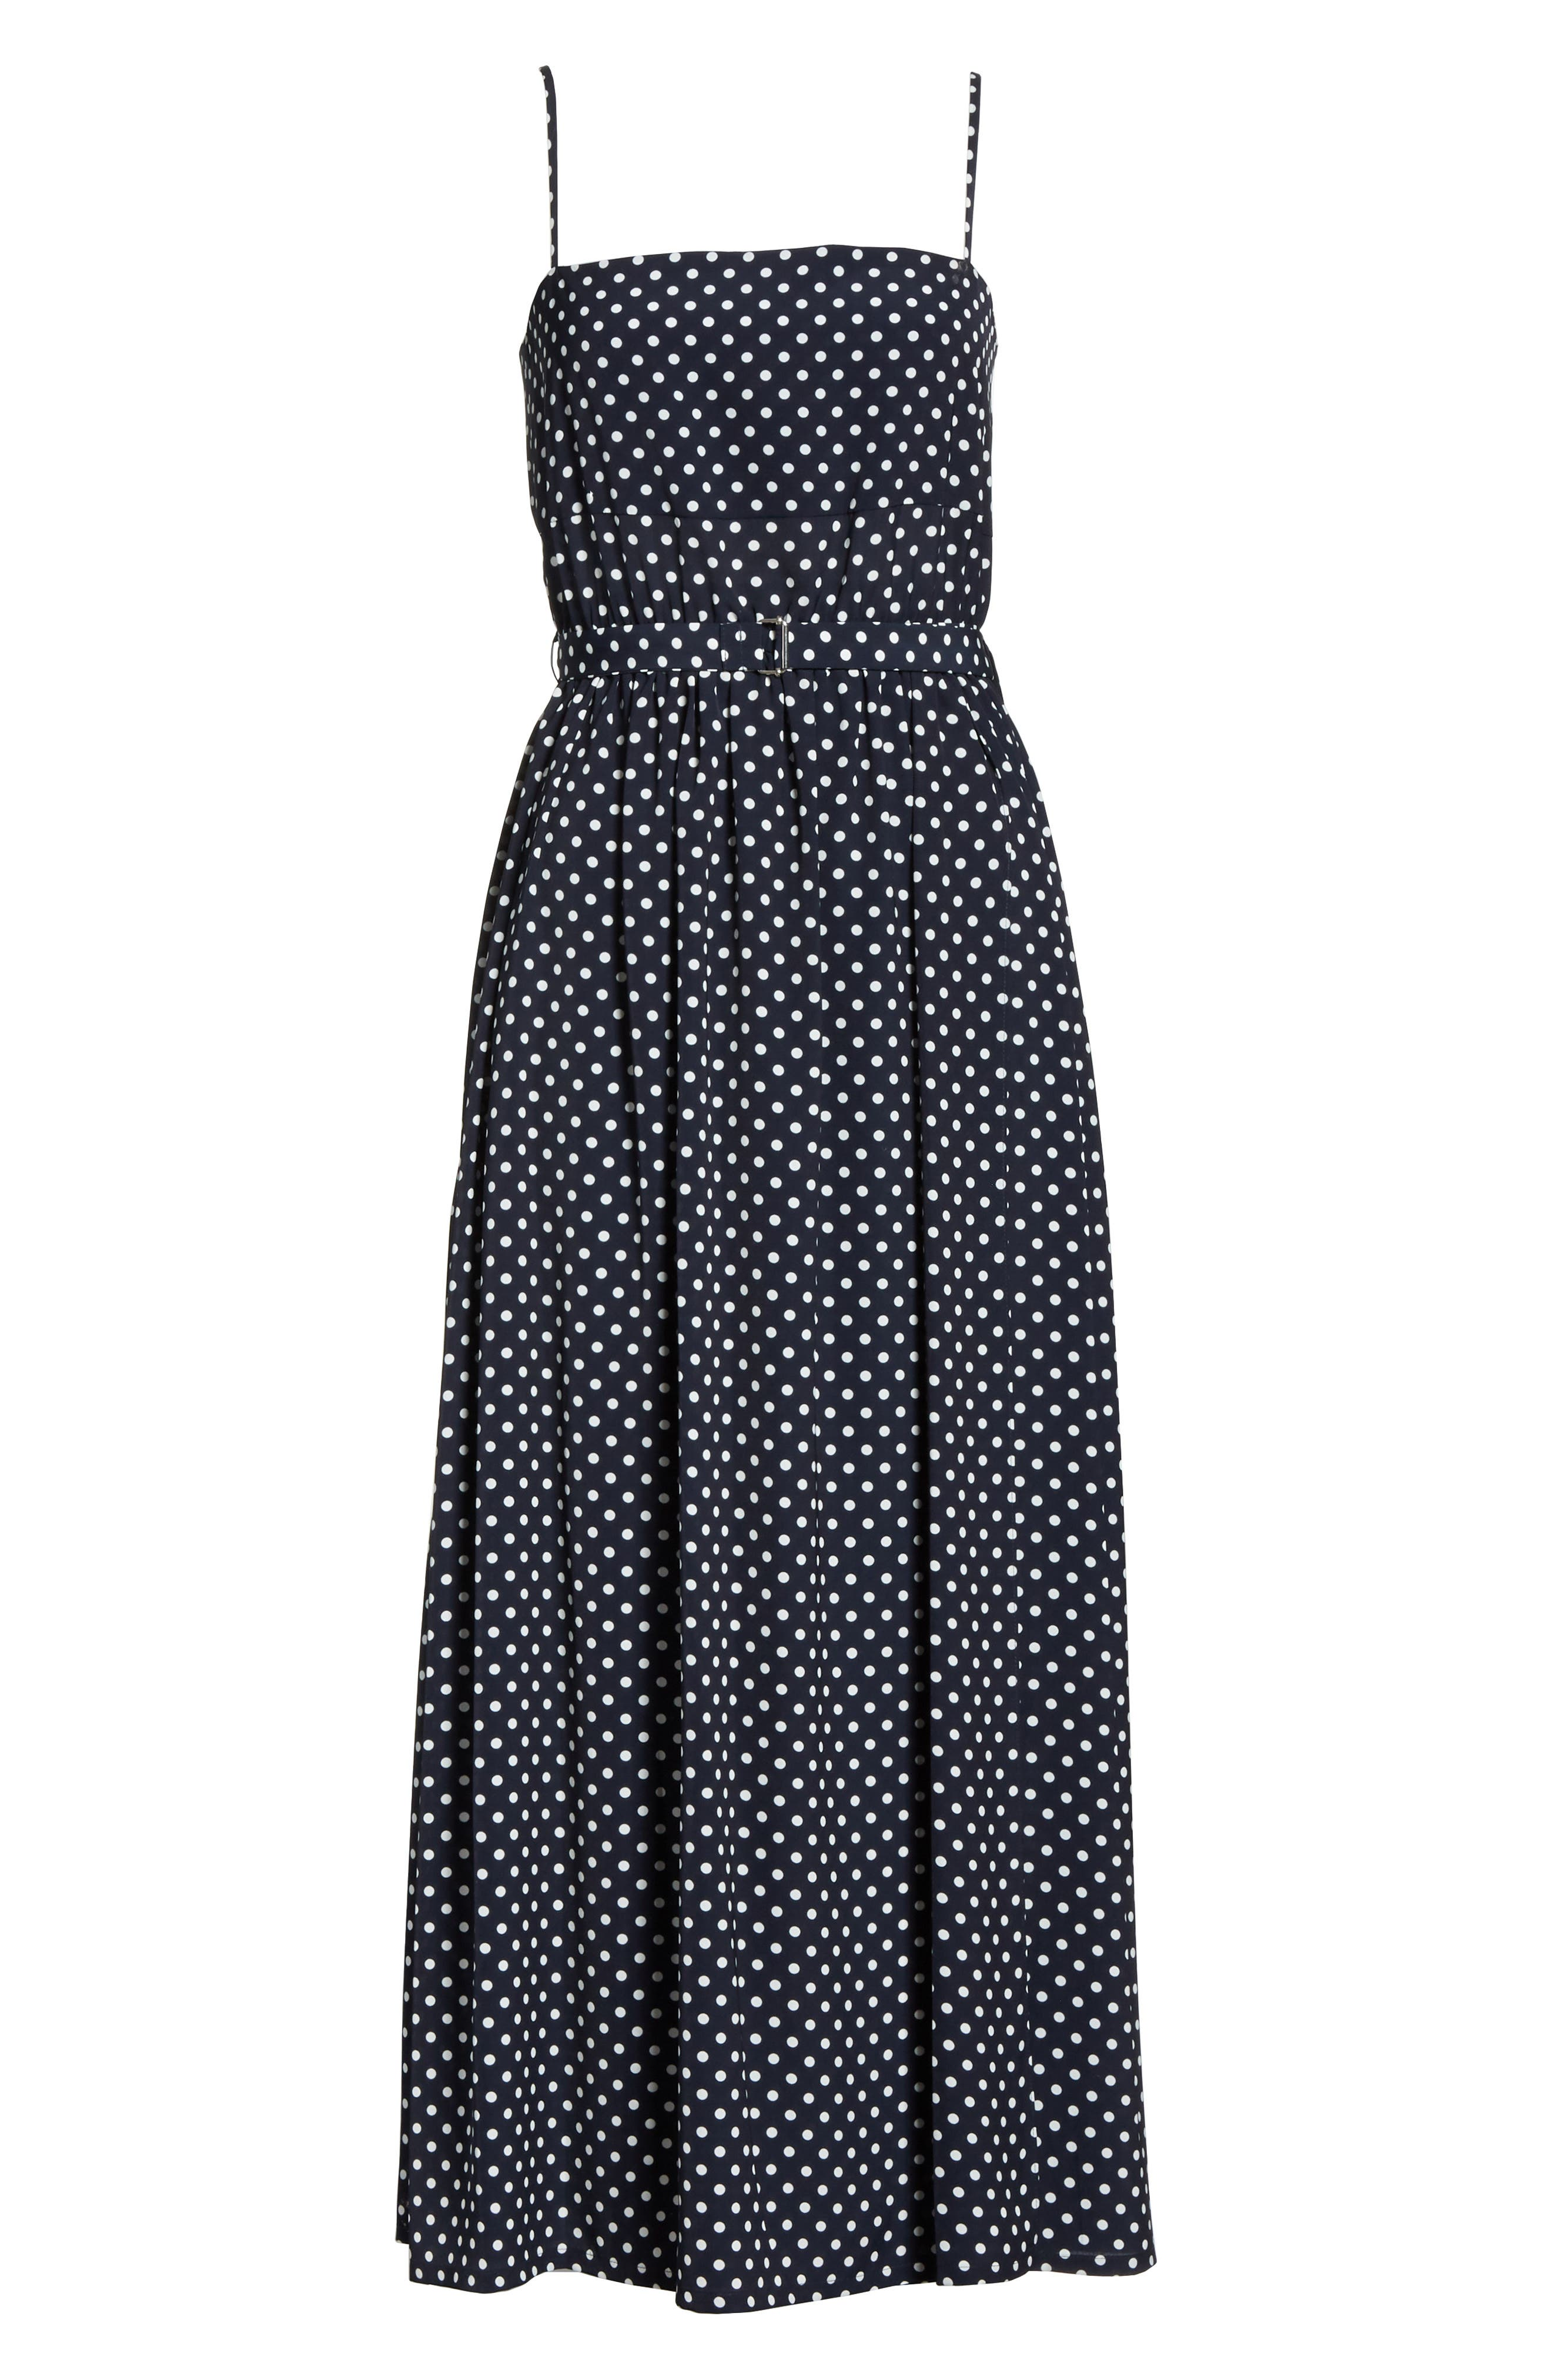 Polka Dot Midi Dress,                             Alternate thumbnail 7, color,                             Navy